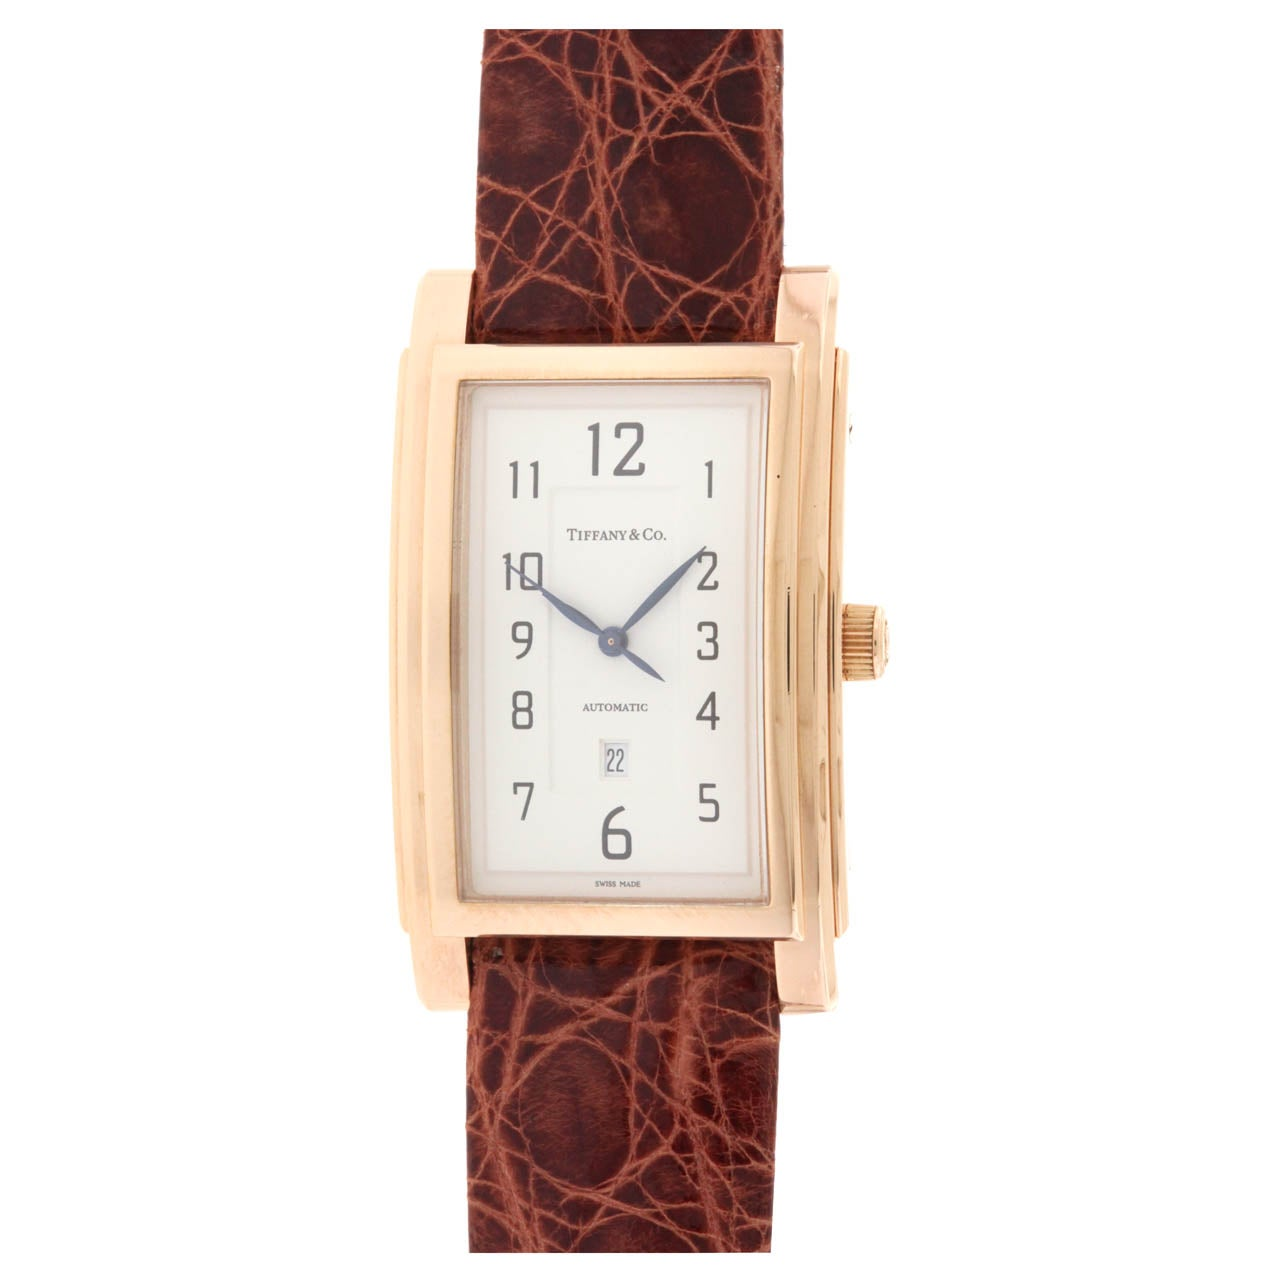 Tiffany & Co Rose Gold Grand Automatic Rectangular Wristwatch with Date